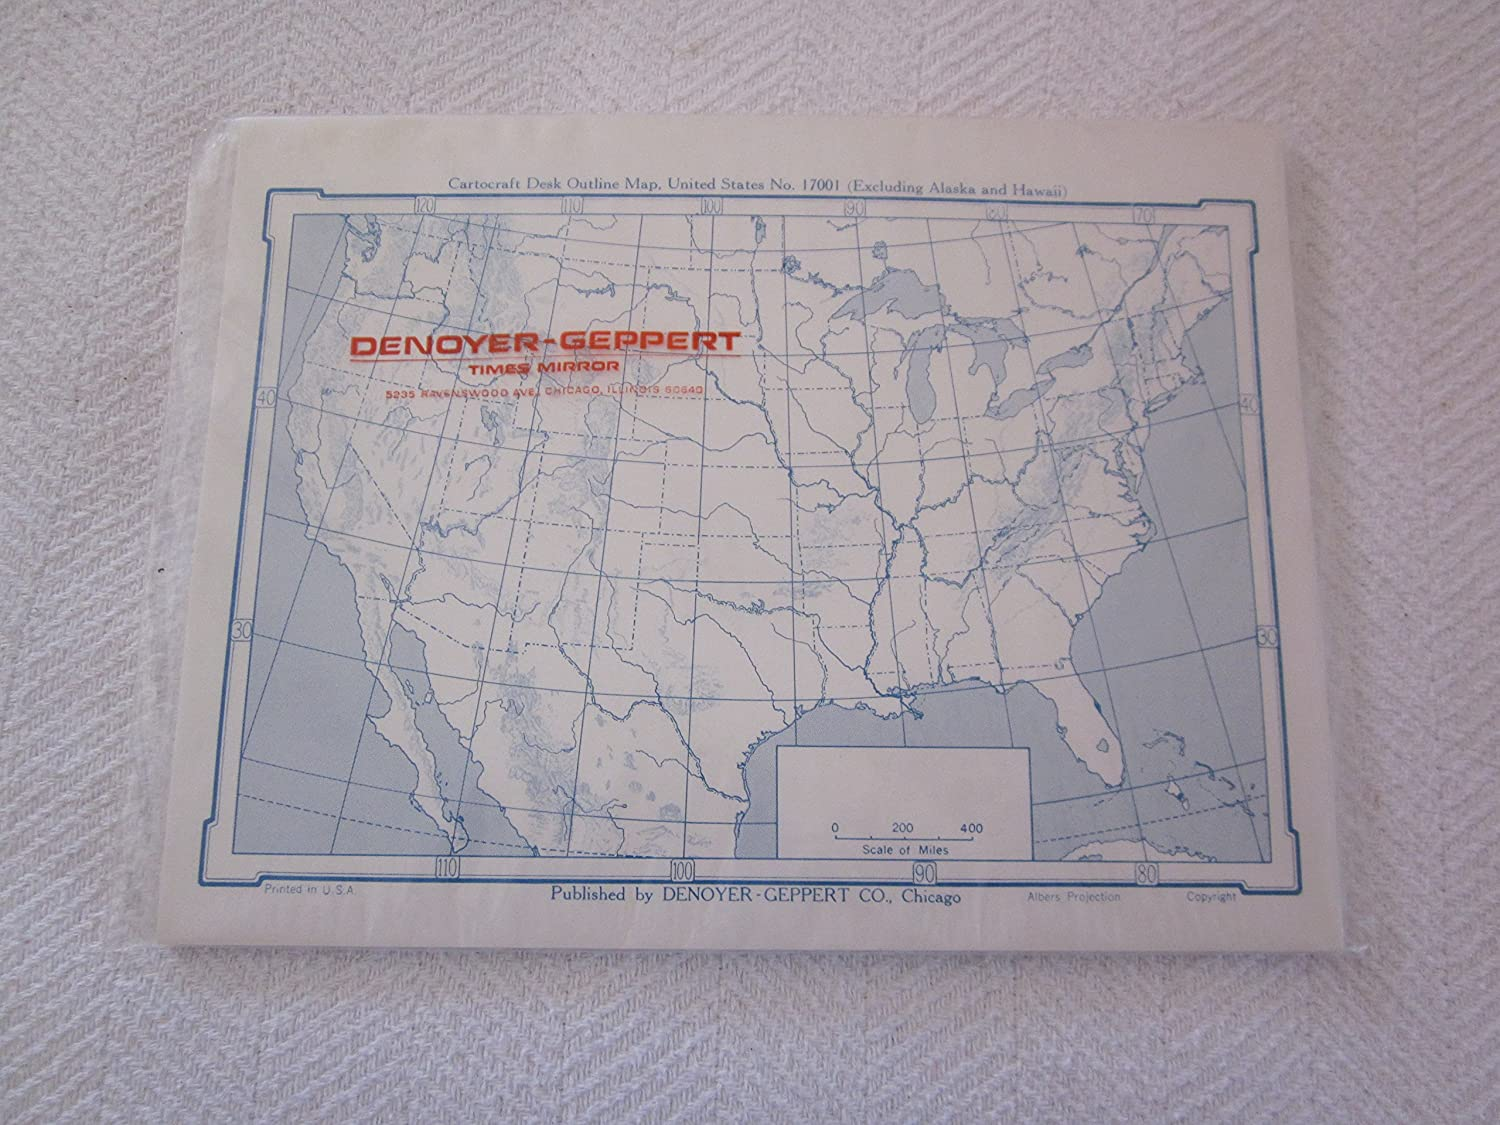 Amazon.com: Cartographic Desk Outline Map, United States, No ...